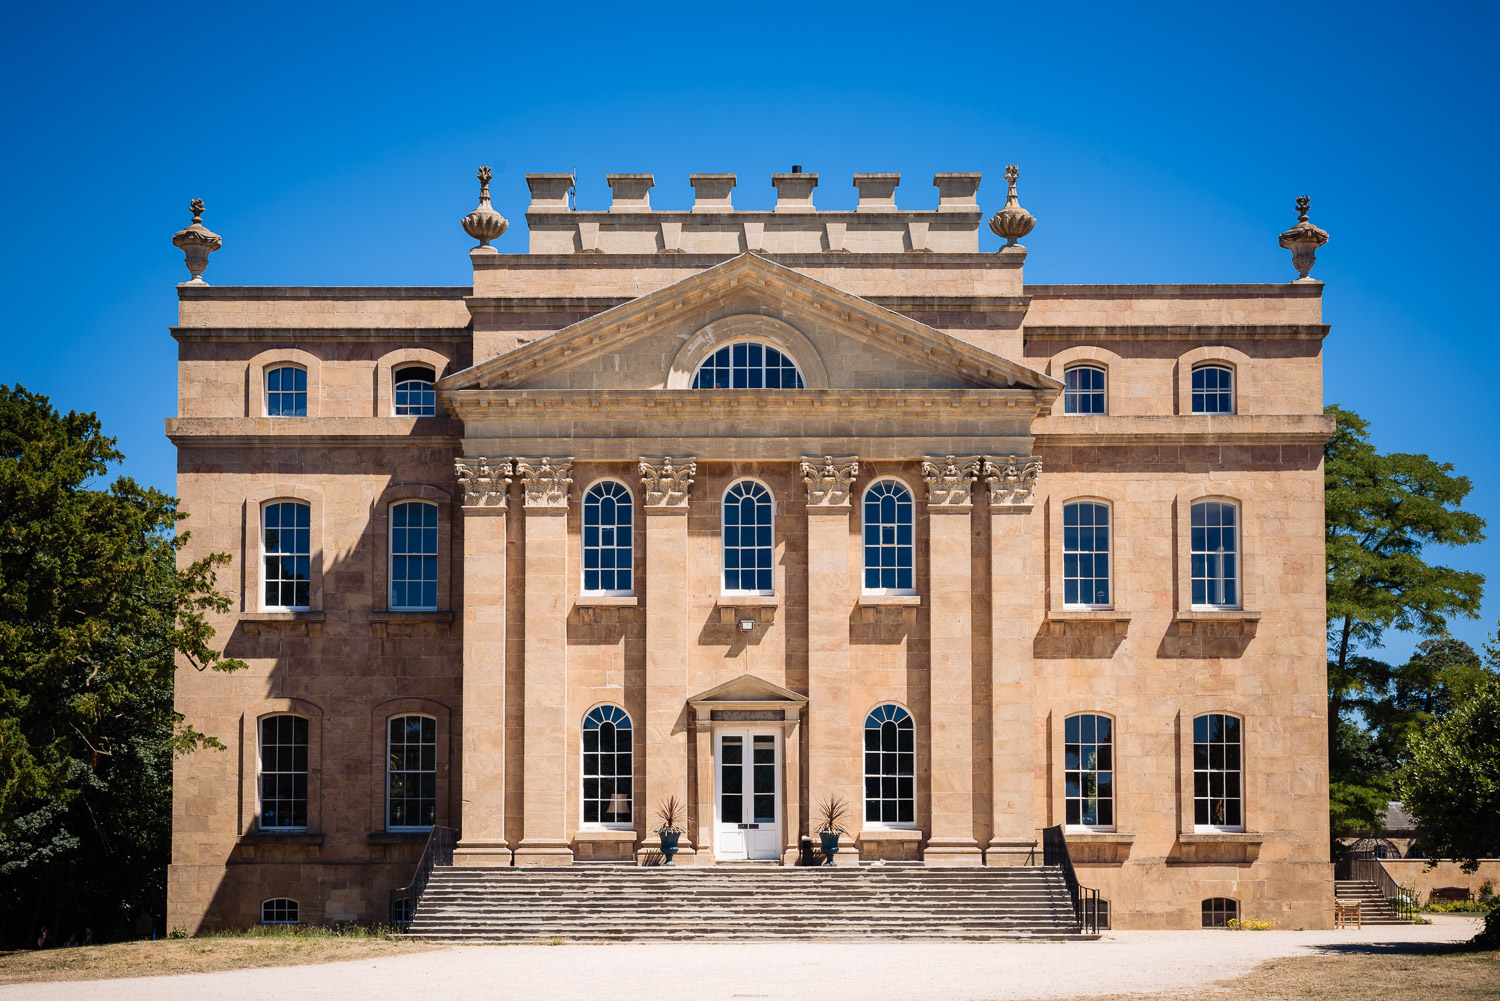 Exterior photograph of Kings Weston House